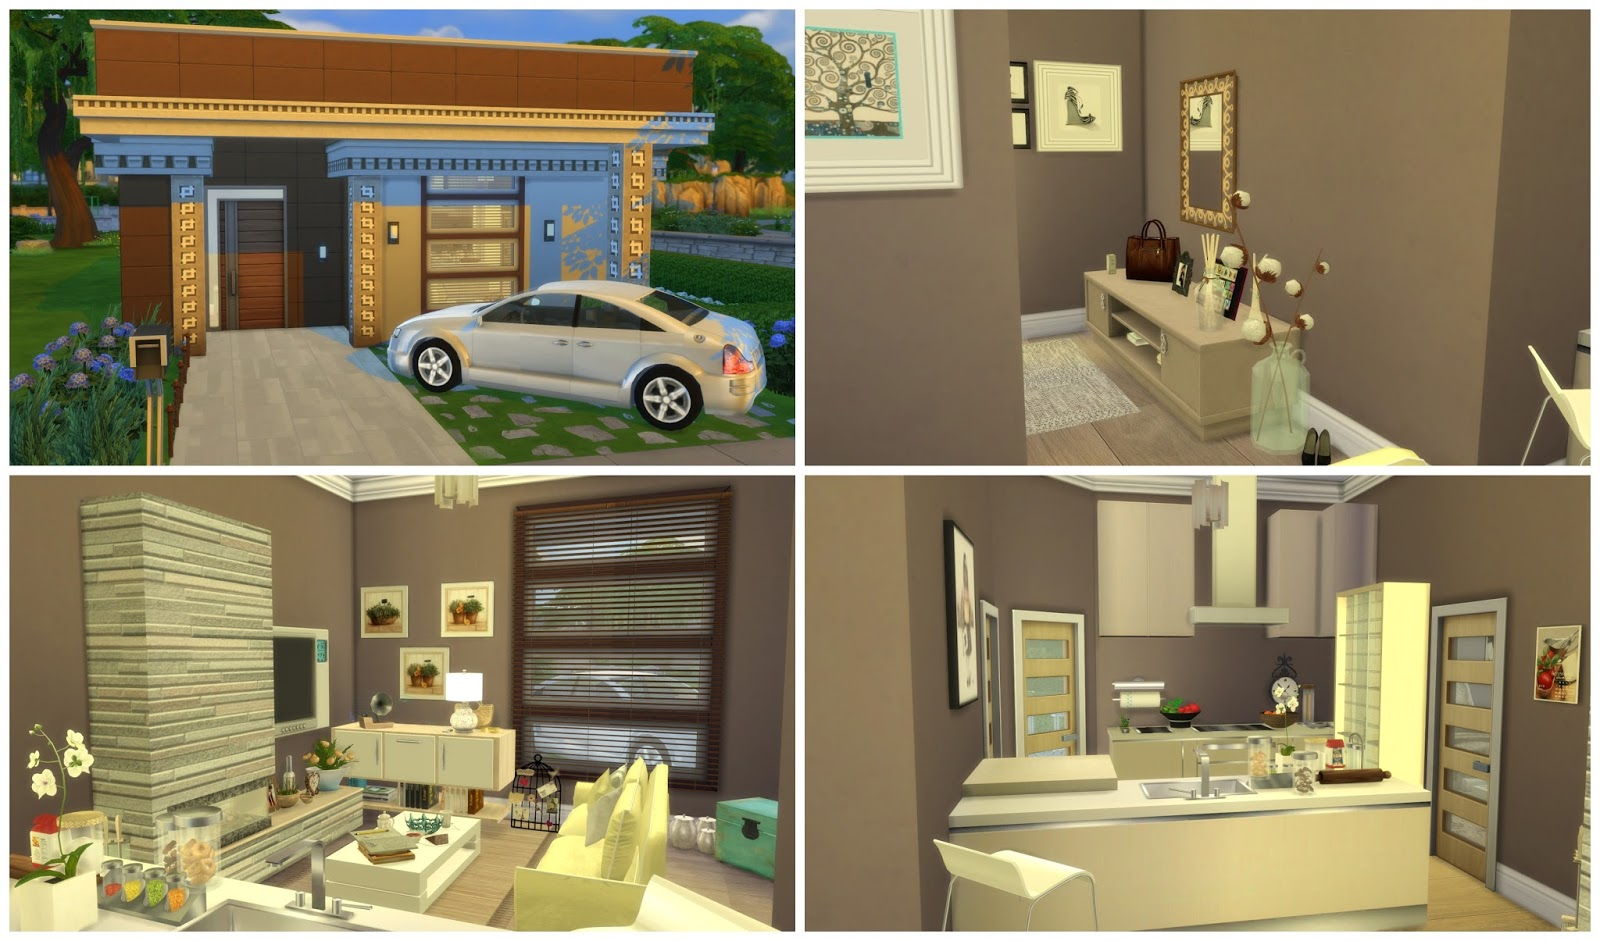 Sims 4 Building on Newcrest Small Modern House II Dinha